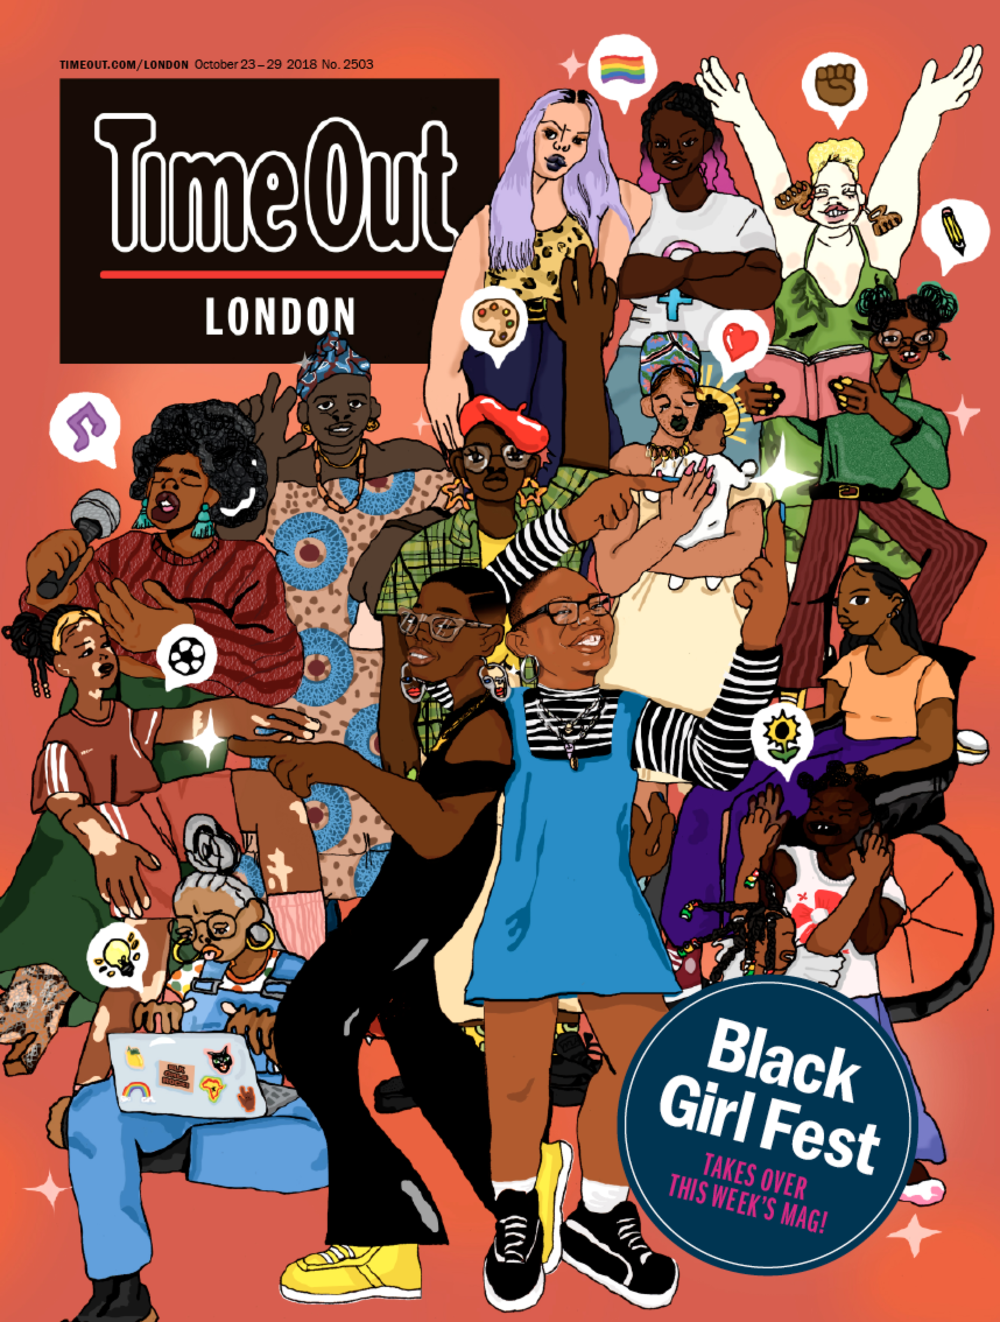 Black Girl Festival Time Out takeover - The UK's first arts and culture festival celebrating Black British women and girls took over Time Out London on 23rd October 2018.This takeover issue was filled with inspiring chats between trailblazing women from different generations, a guide to the thriving Black queer scene and Black Girl Fest picks in every section.Thank our contributors Niellah Arboine, Tanya Compas, Krystal Neuvill and Christina Nwabugo.Read HERE for more.